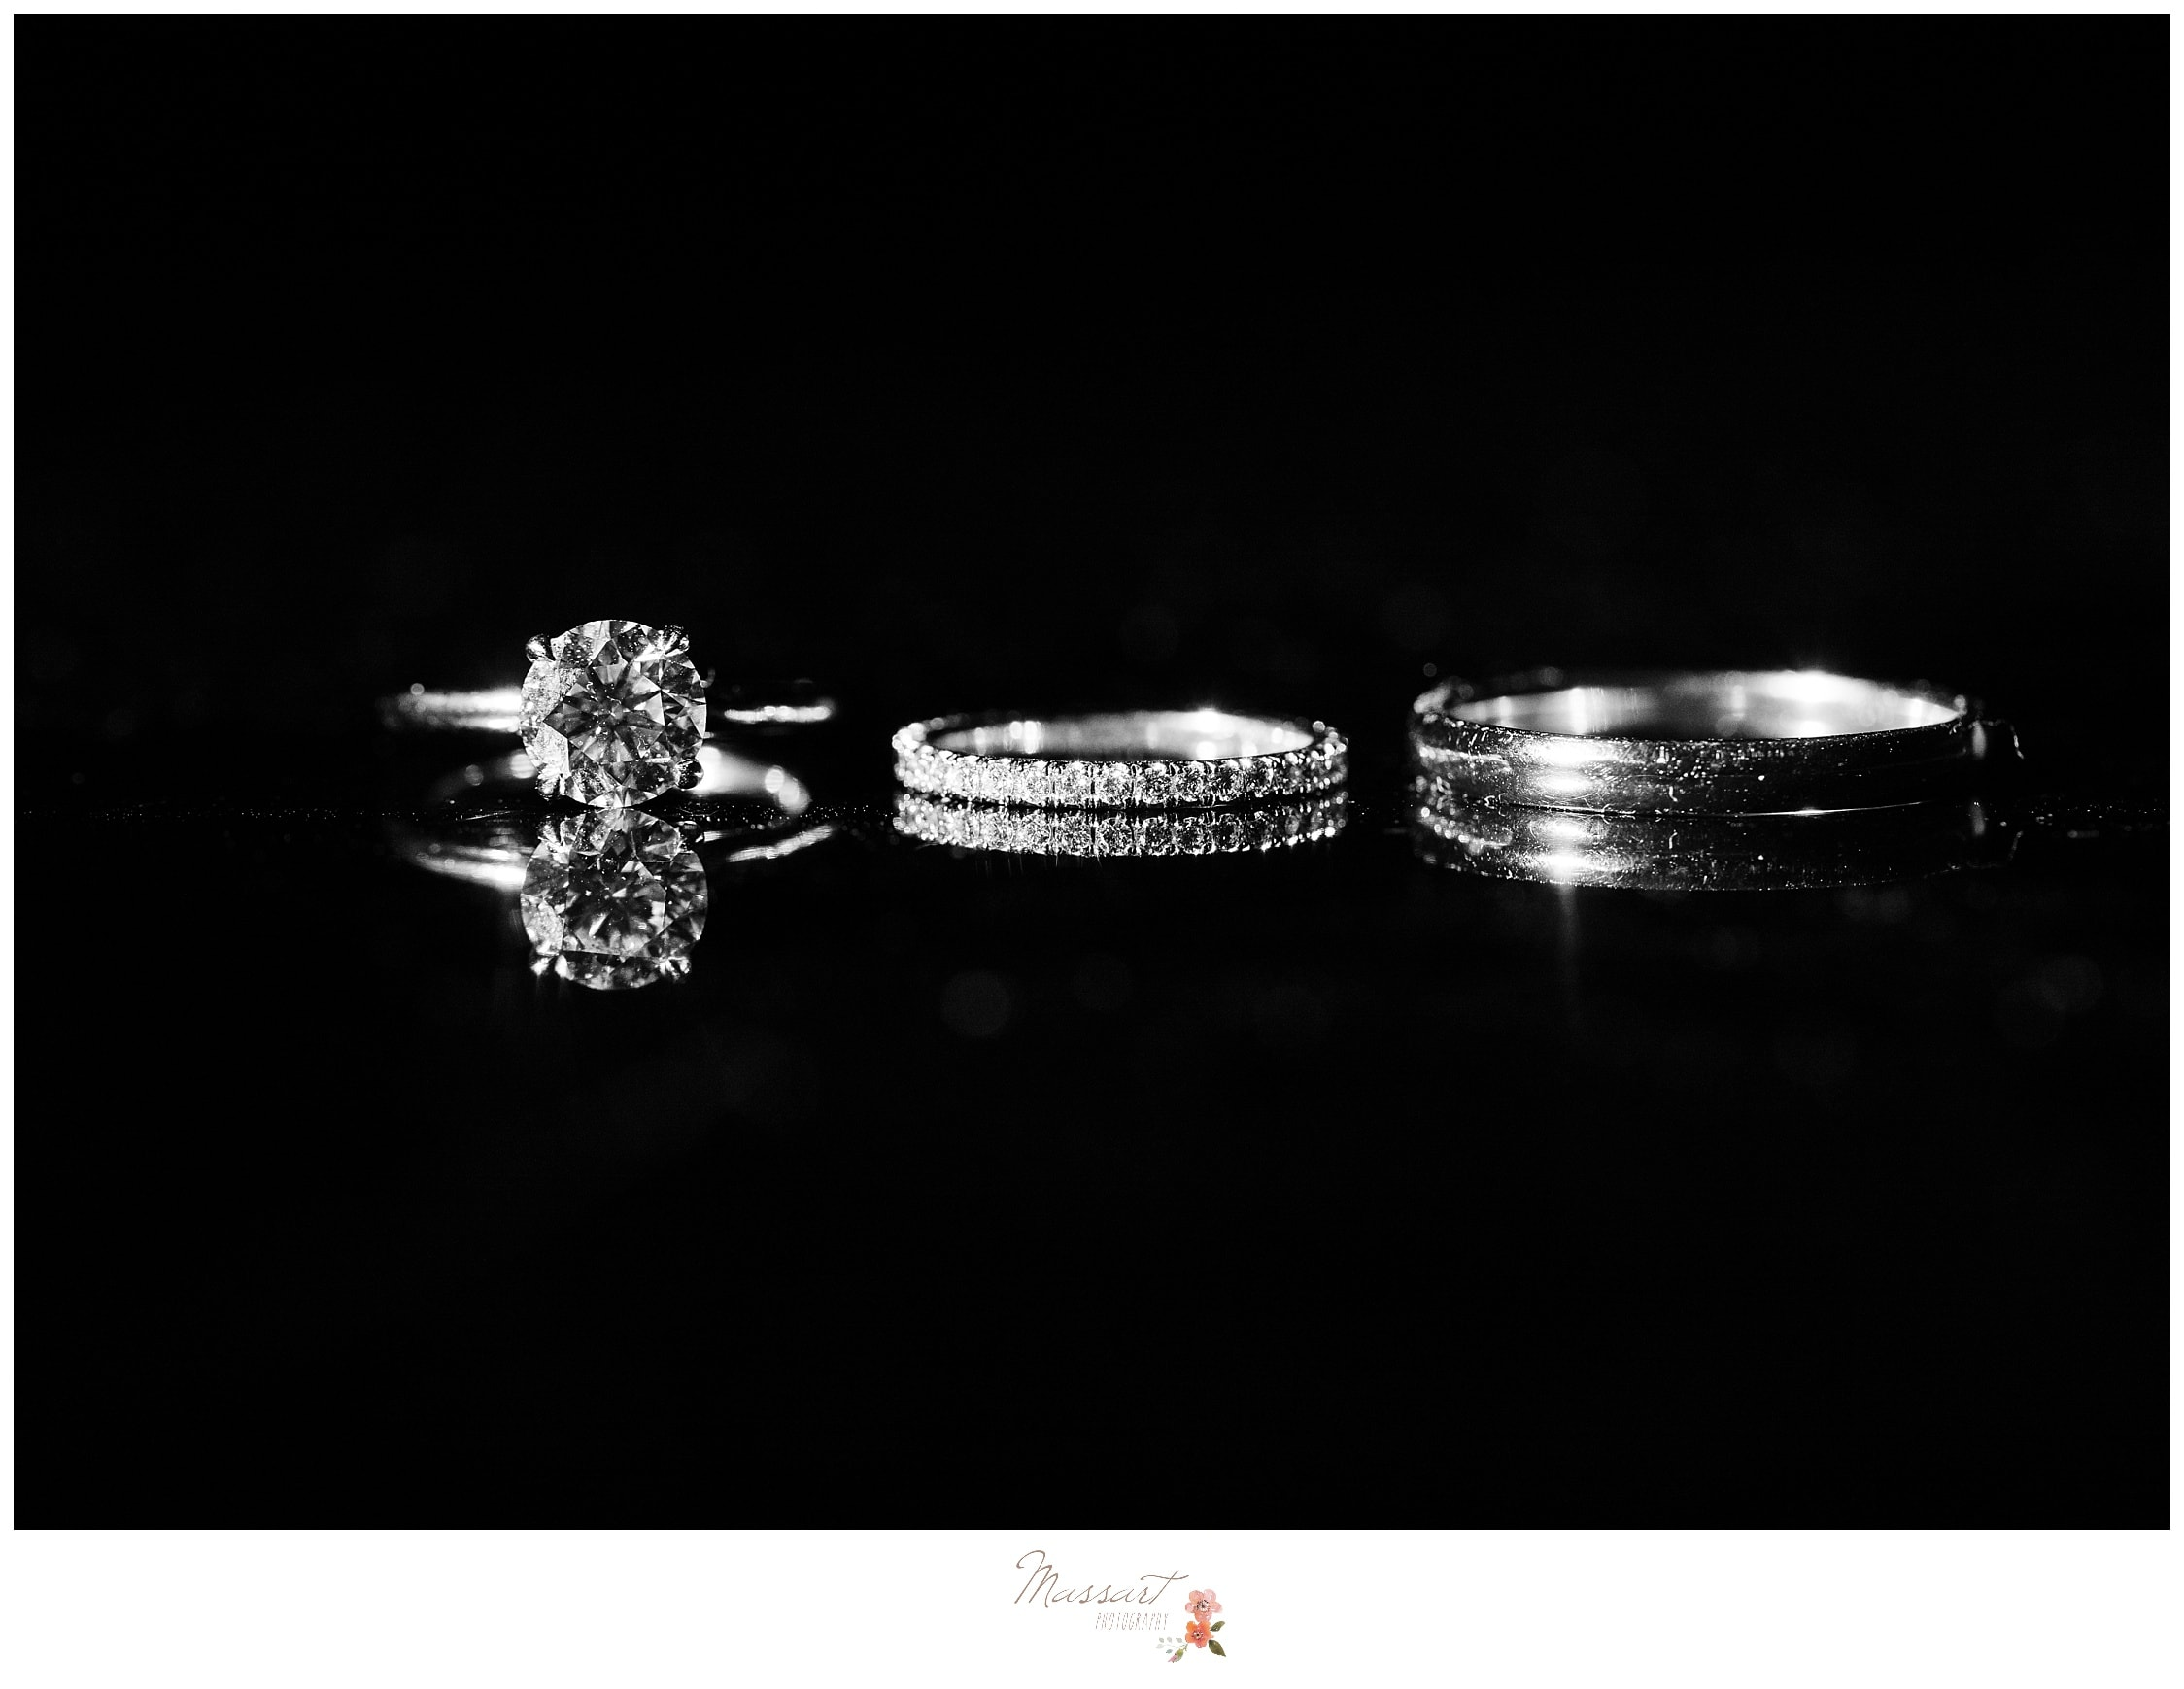 Portraits of the bride and groom's wedding bands photographed by Massart Photography RI